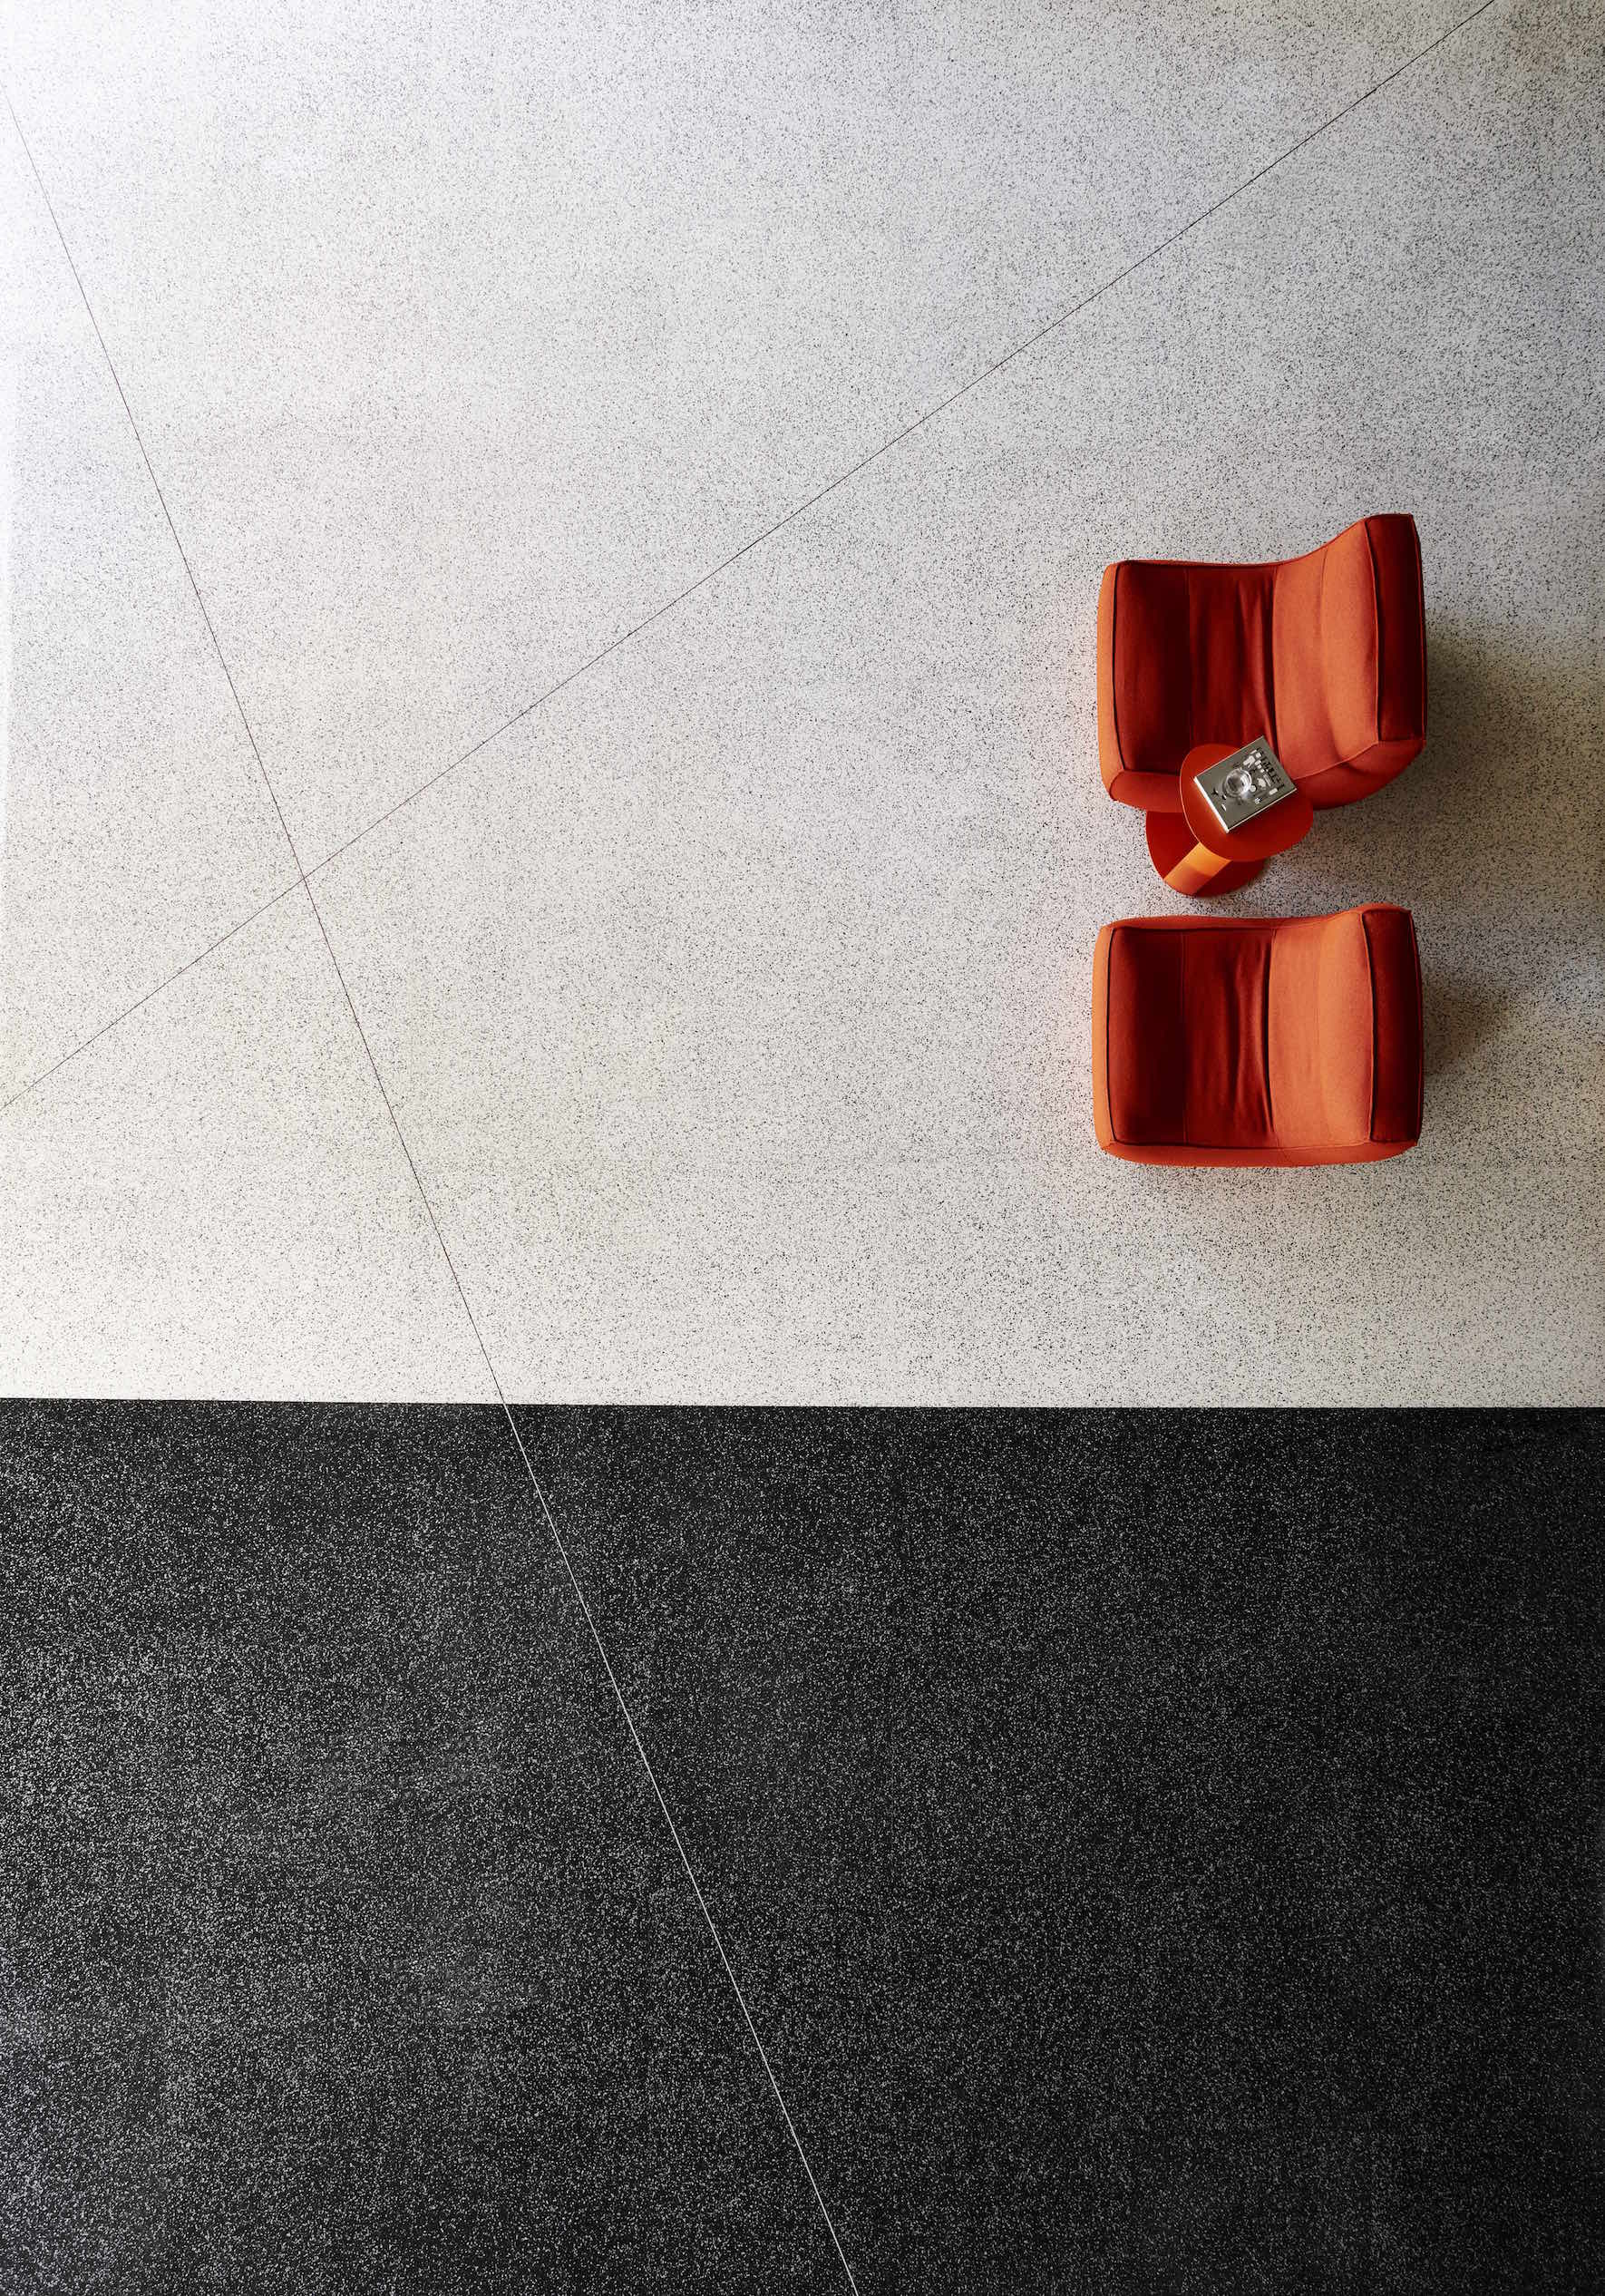 Patcrafts Newest AdMix Resilient Tile Emulates Terrazzo